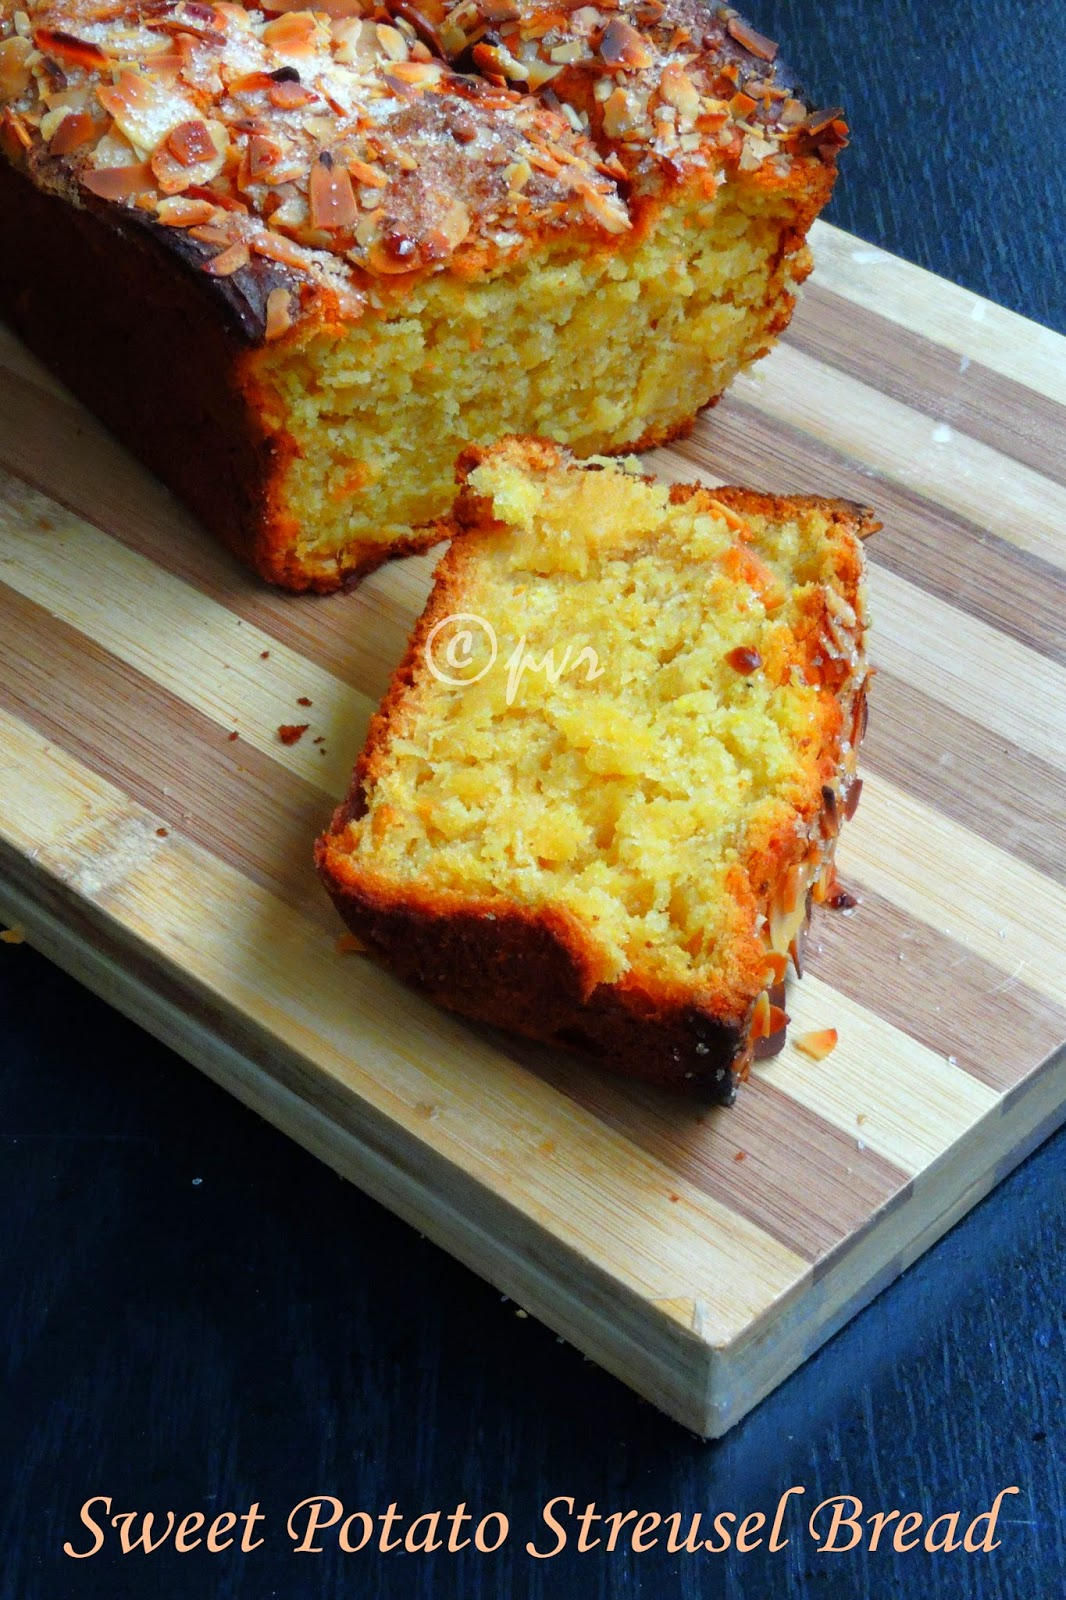 Sweet potato Streusel Bread